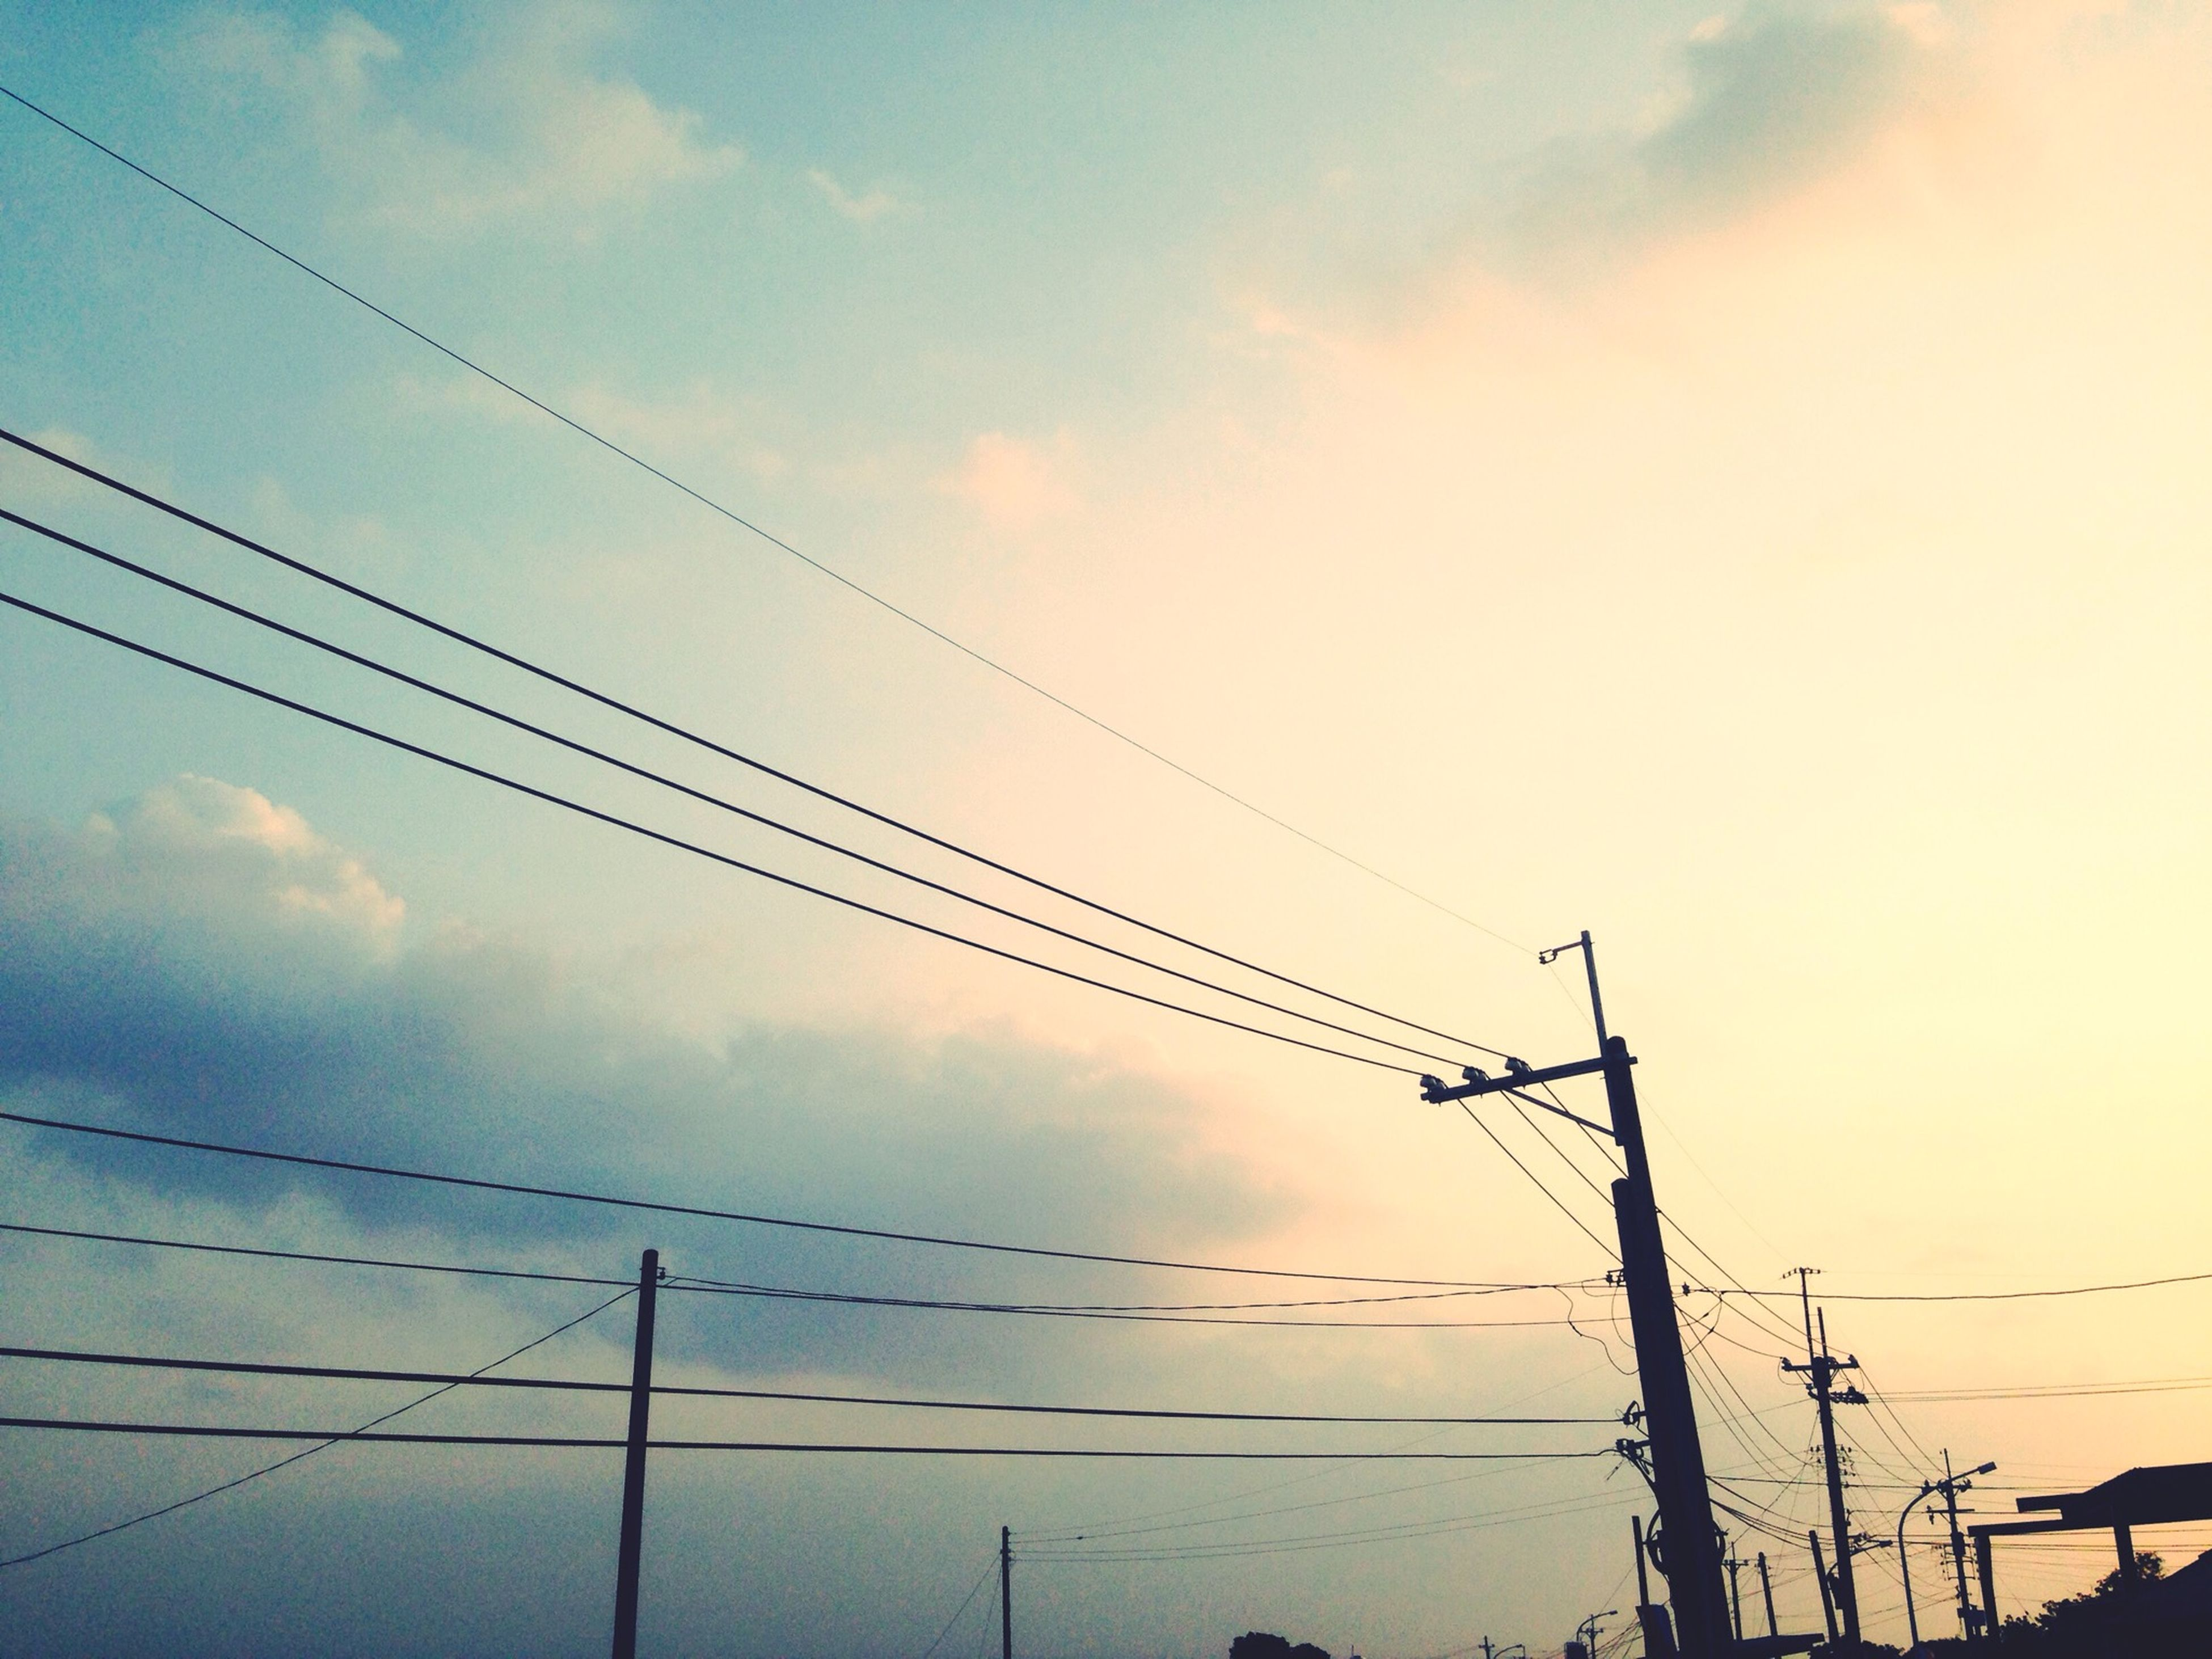 power line, low angle view, cable, sky, electricity pylon, power supply, electricity, connection, cloud - sky, fuel and power generation, power cable, technology, silhouette, cloudy, cloud, bird, outdoors, no people, pole, animal themes